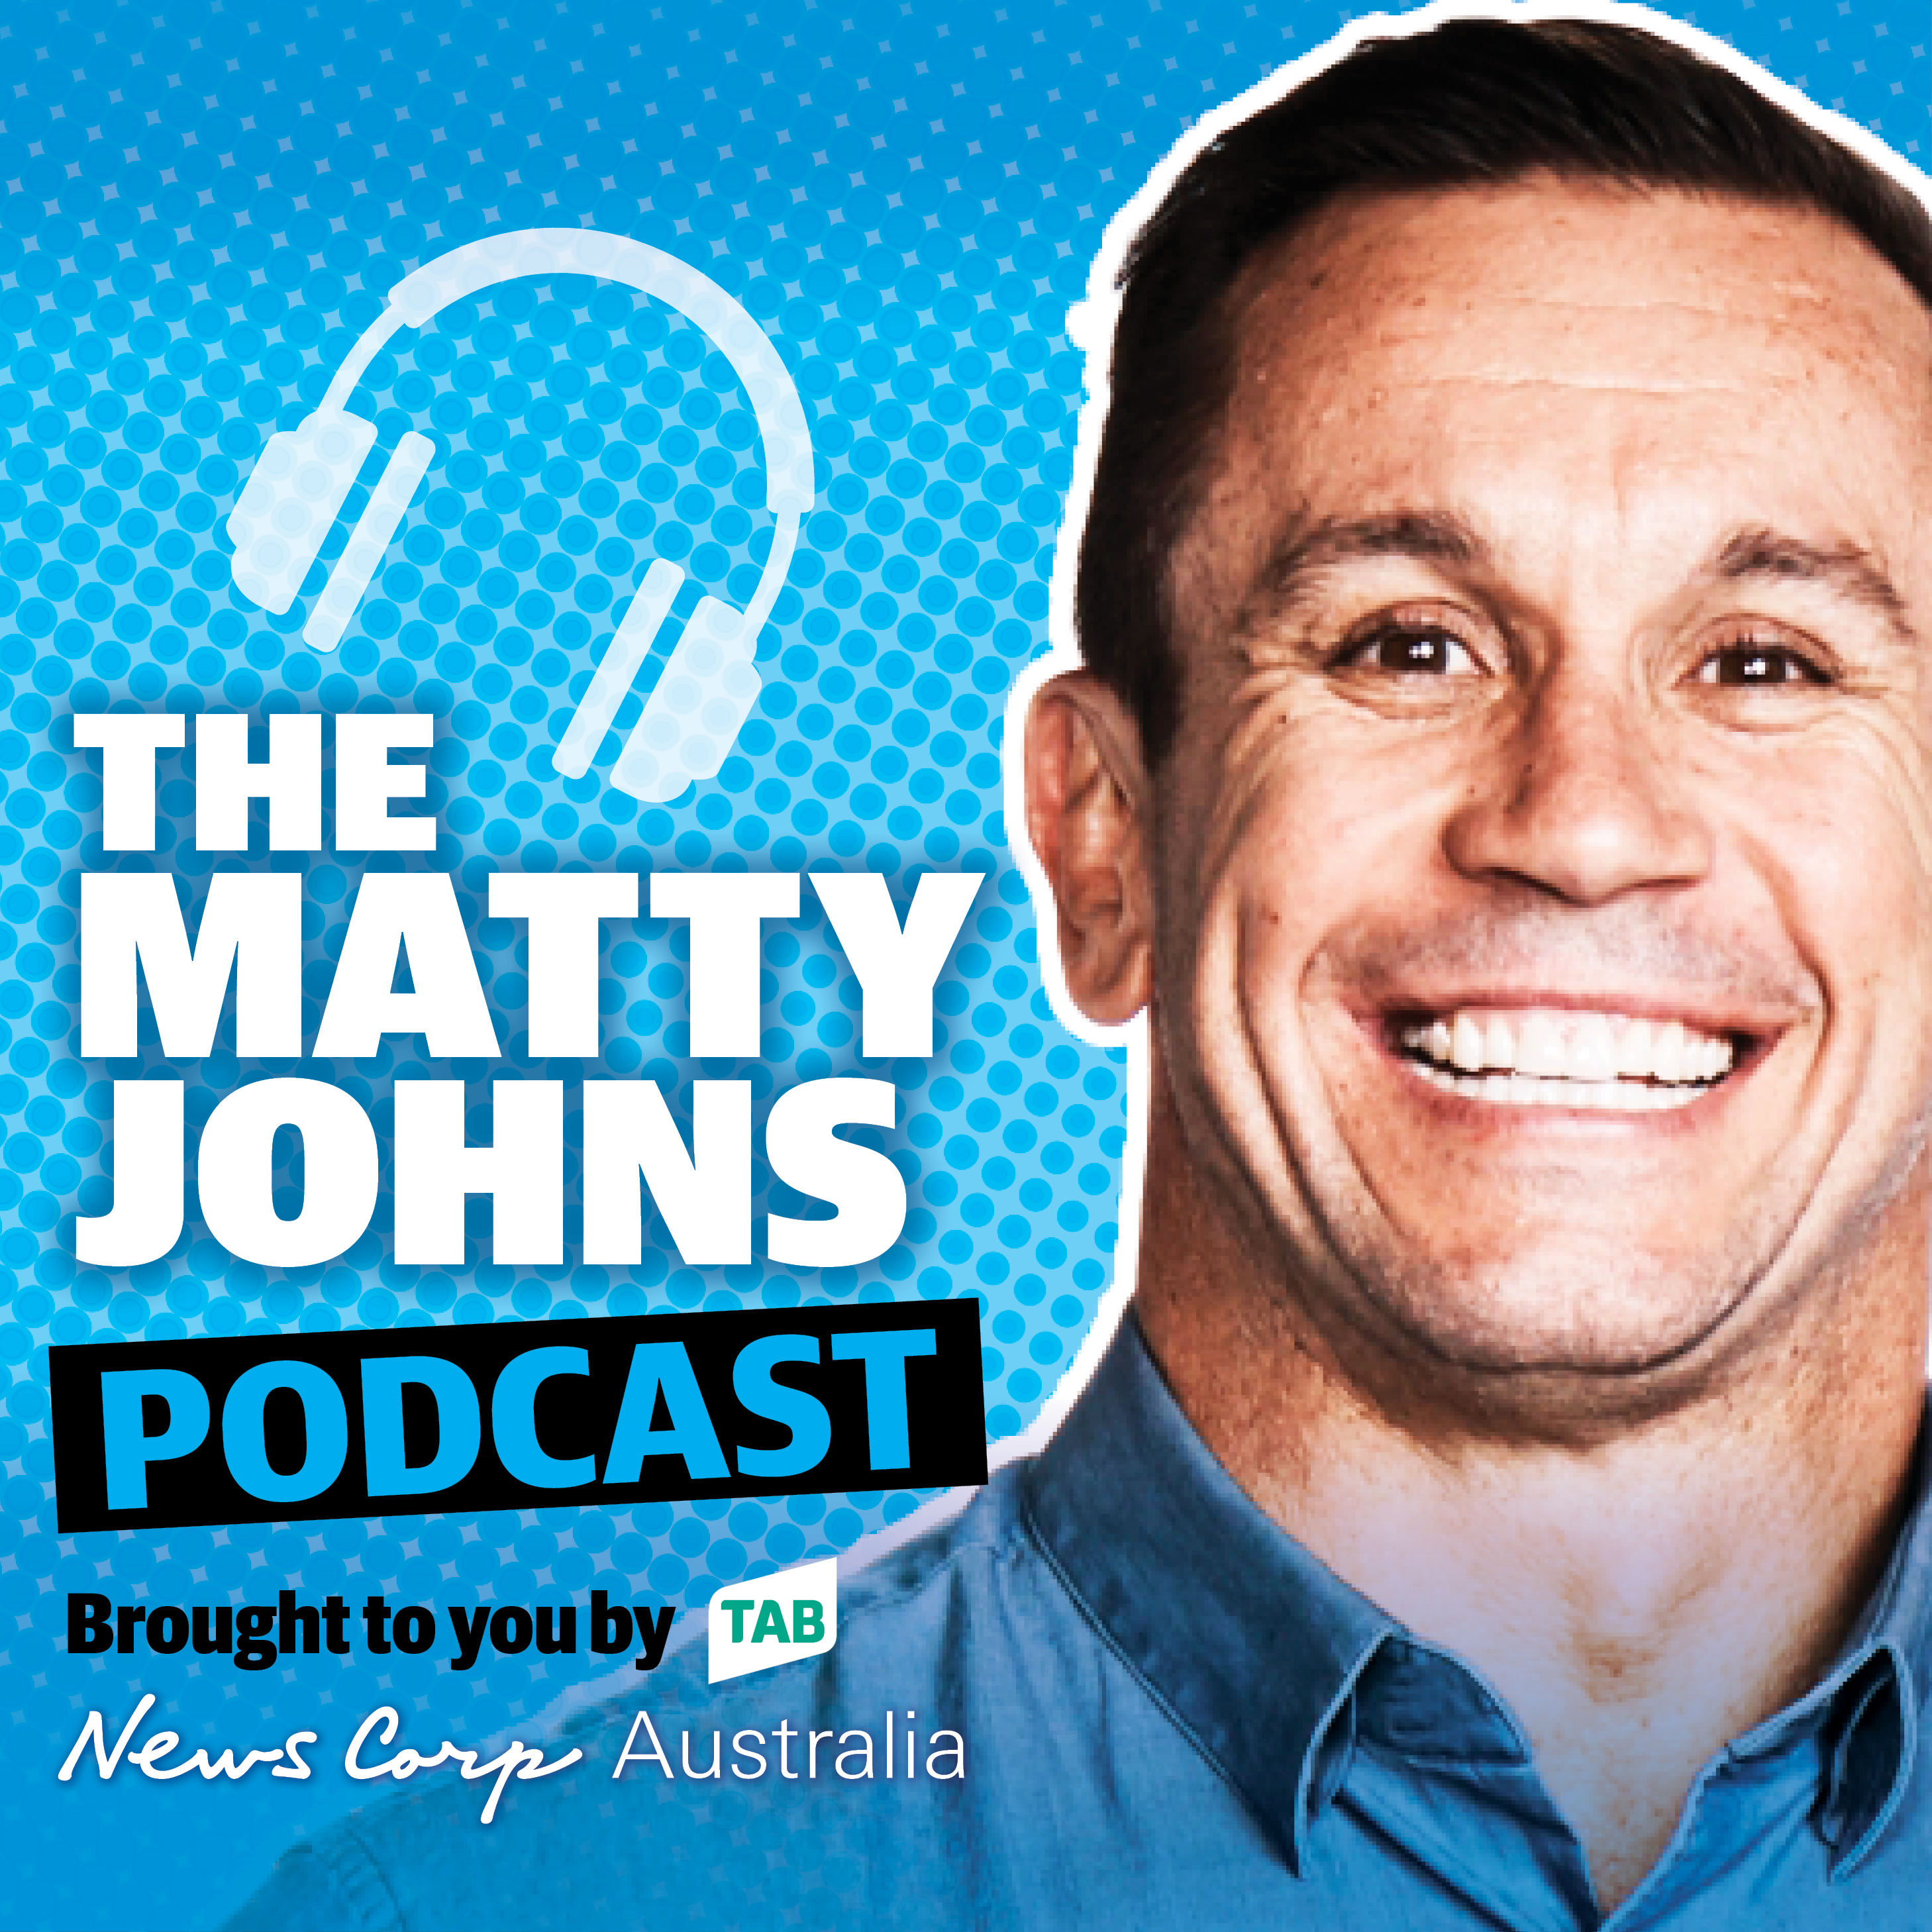 Matty Johns #1: Podcasts are better than Lego